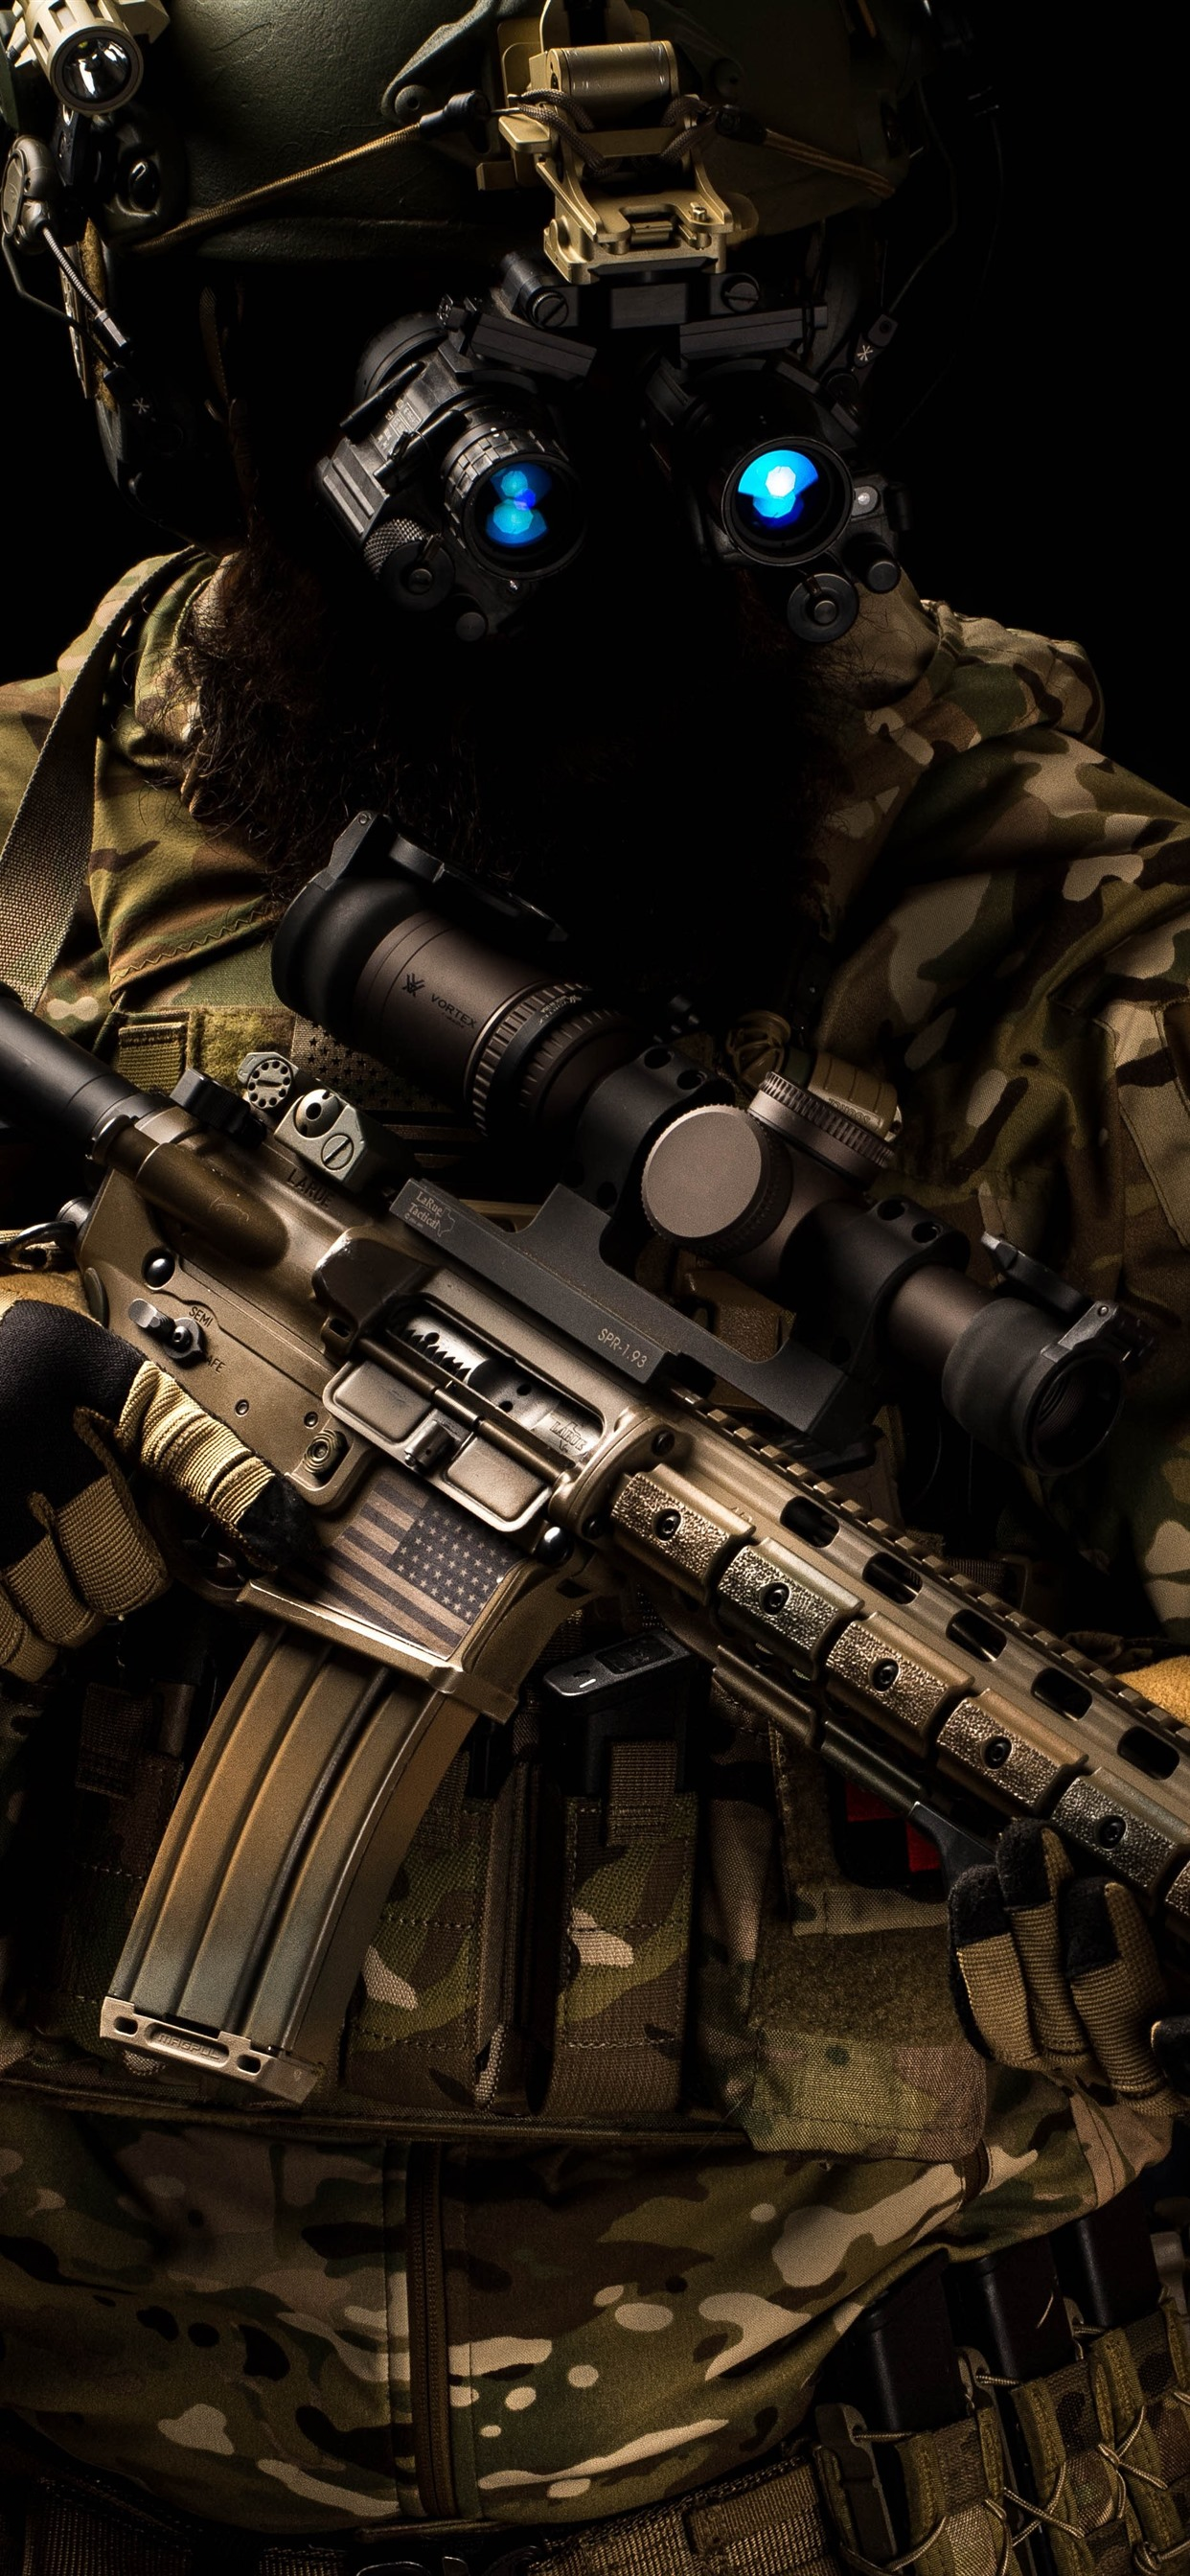 Special forces helmet assault rifle 1242x2688 iPhone XS Max 1242x2688